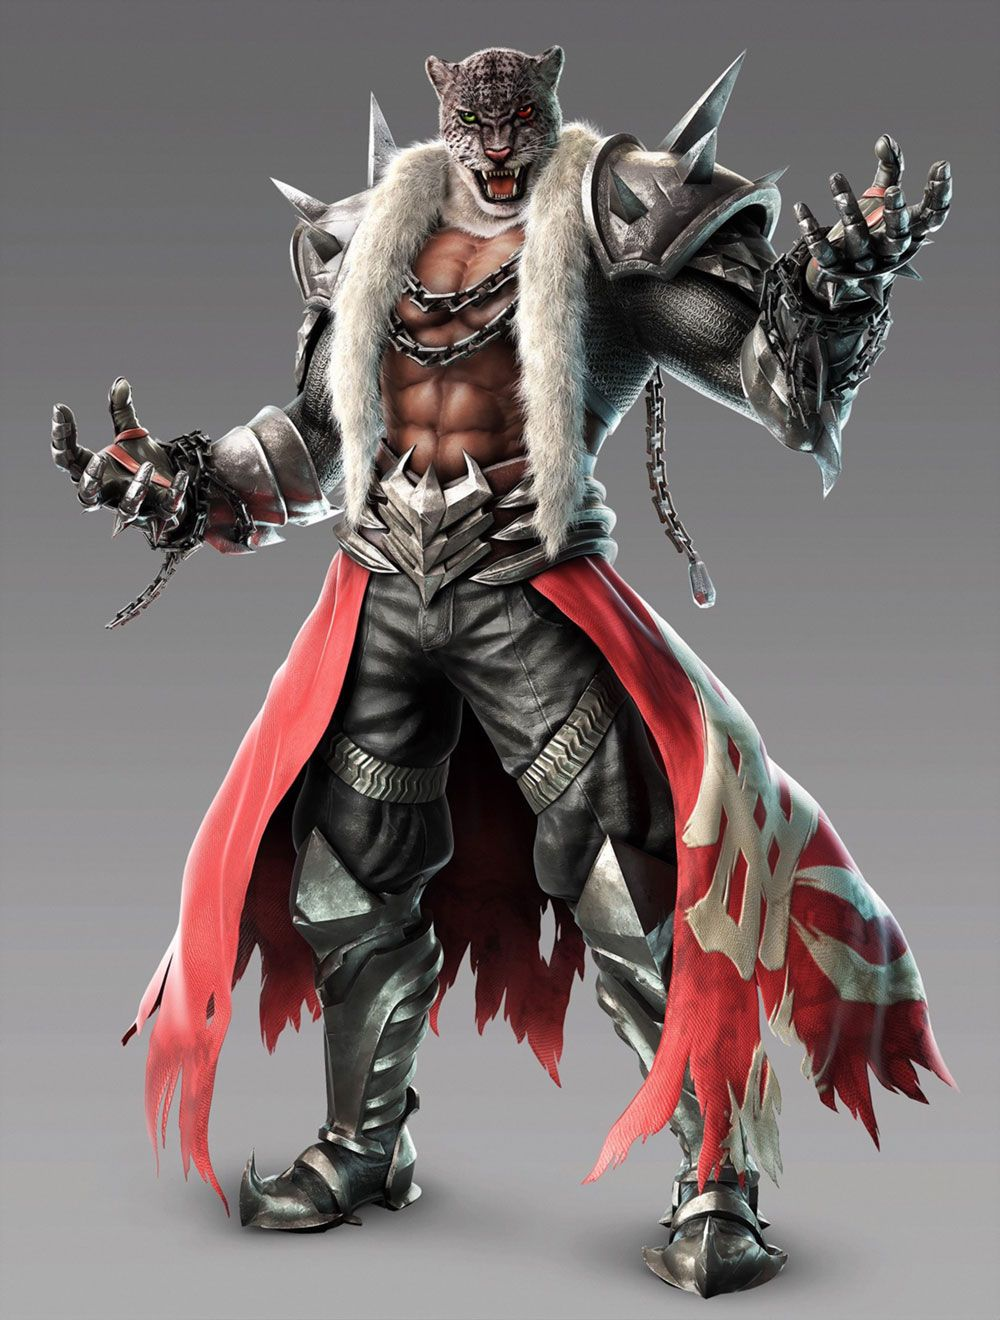 Armor King Character Artwork From Tekken 7 Fated Retribution Art